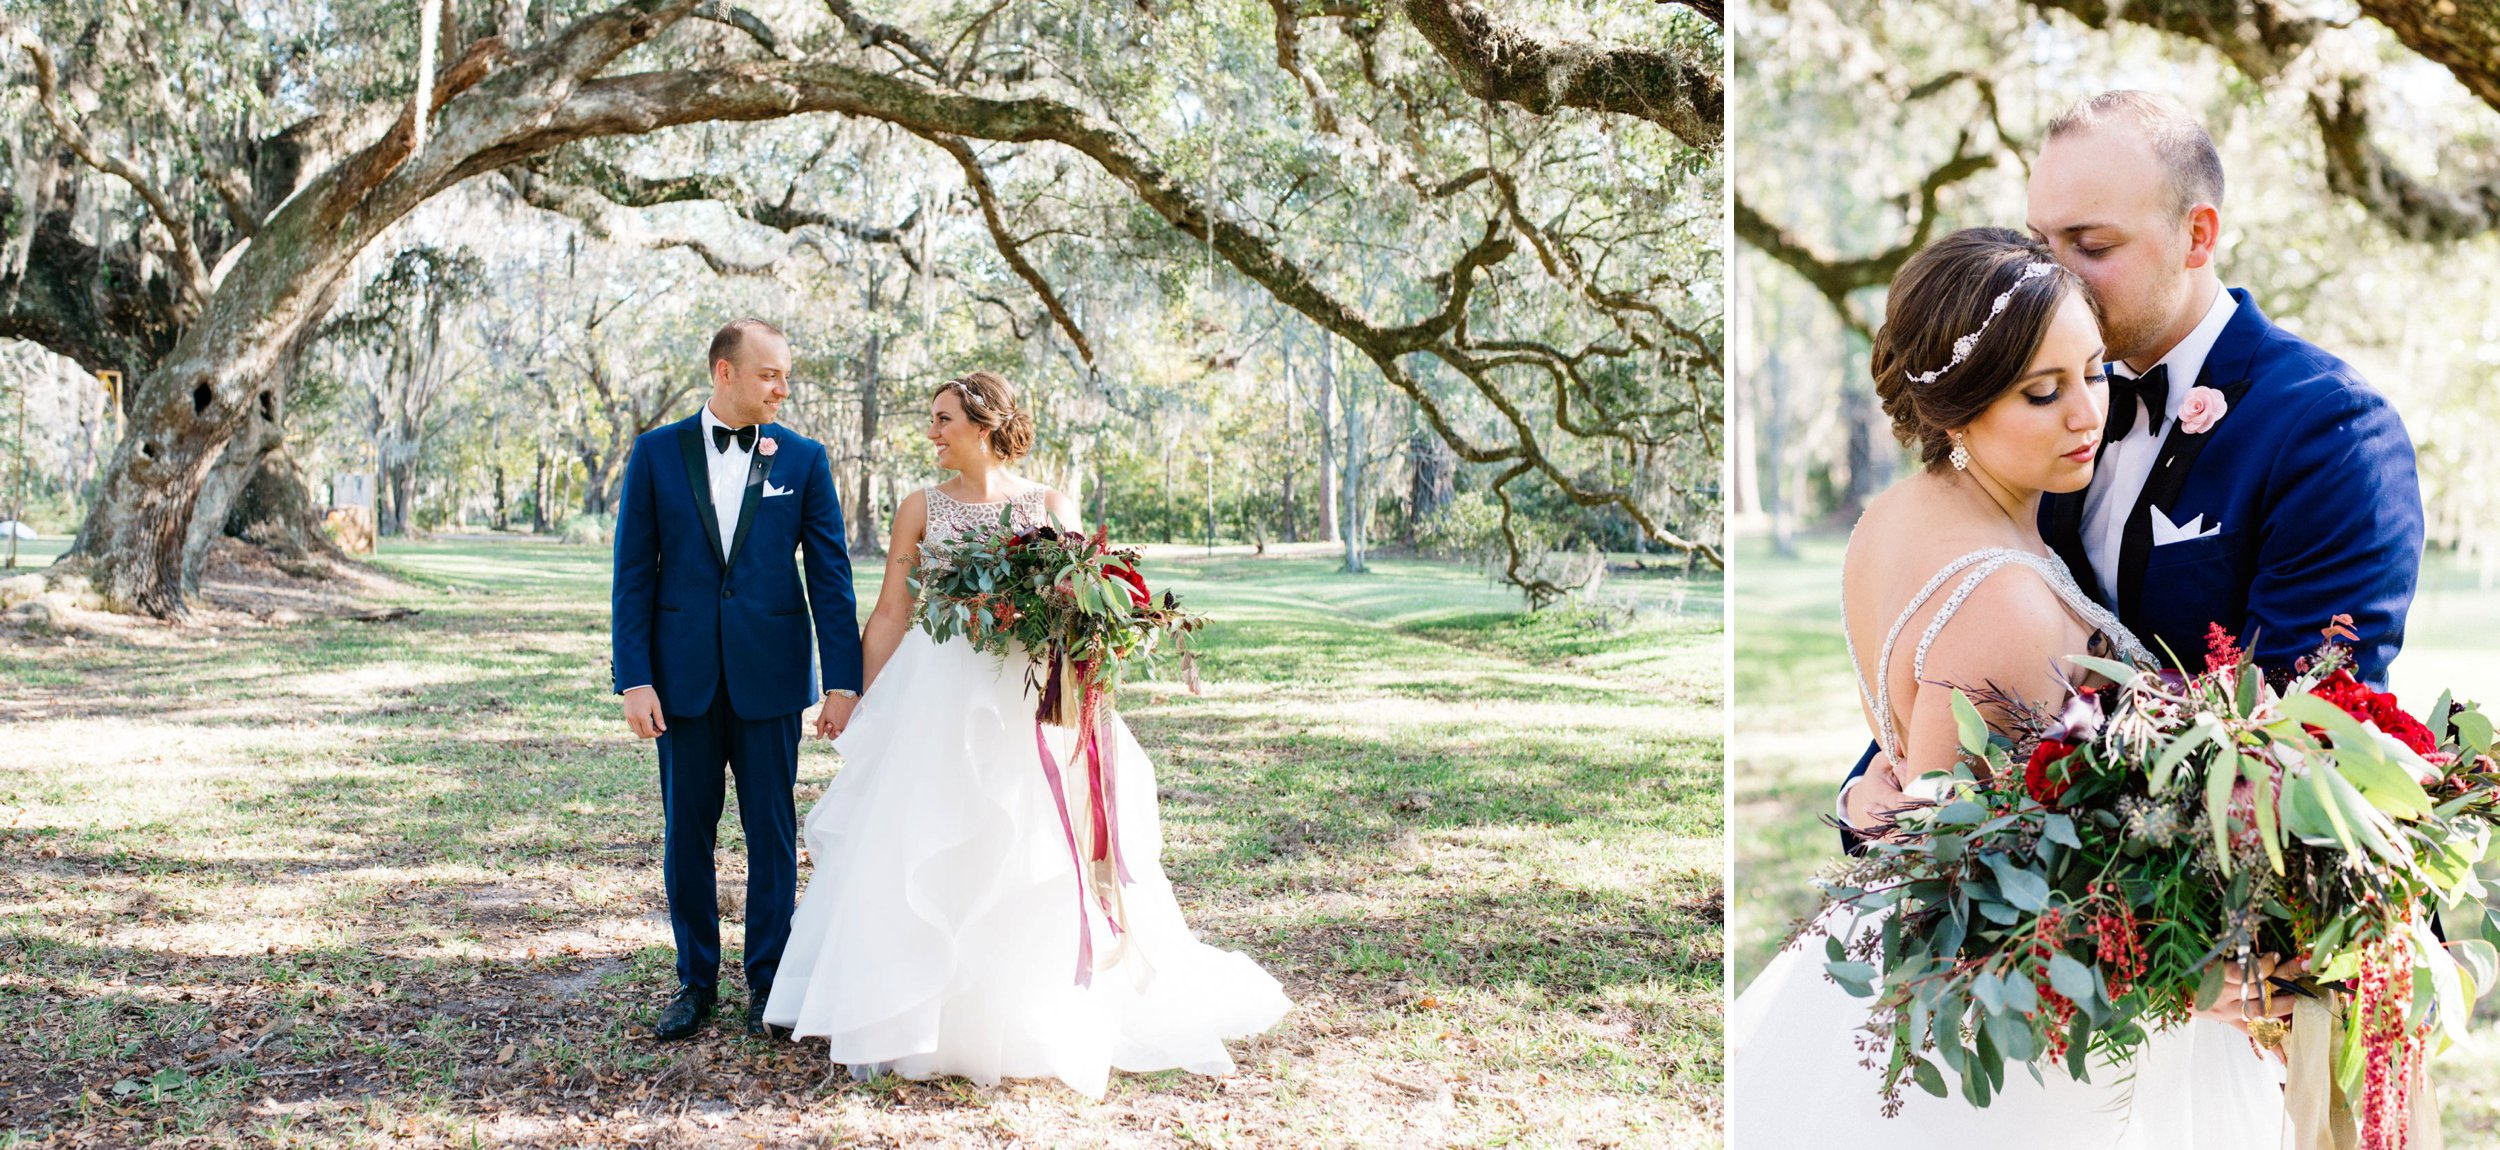 Charleston-wedding-photographer_0118.jpg